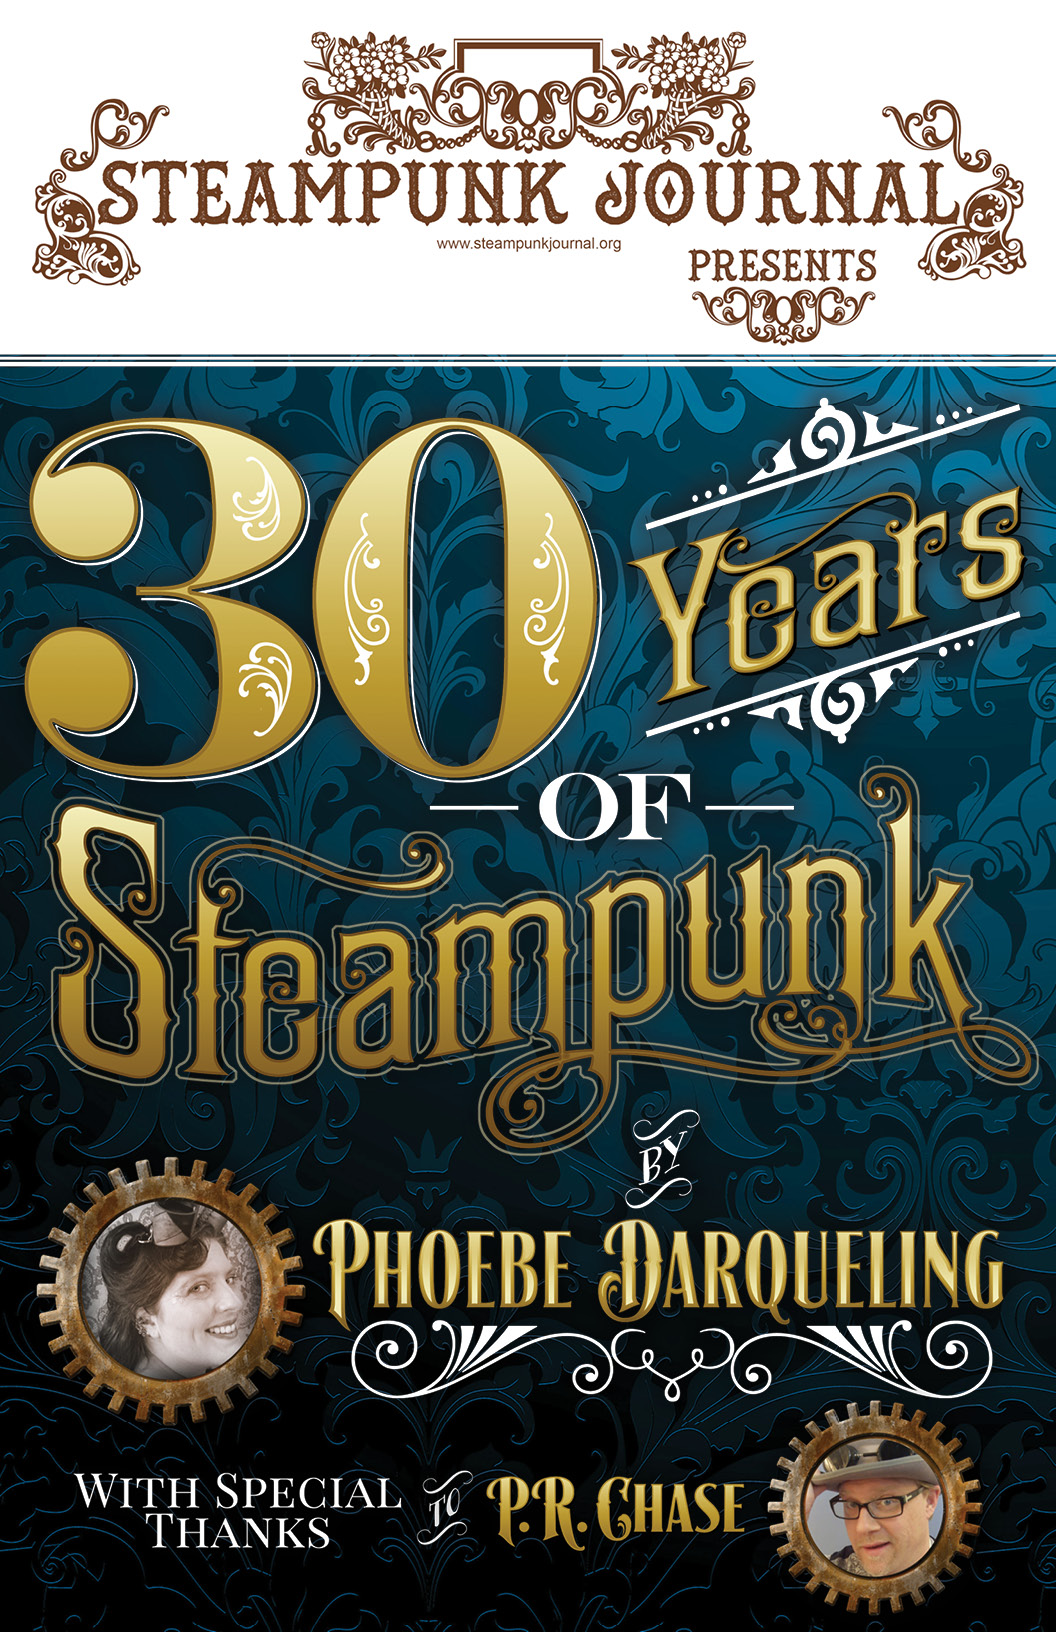 The 30 Years of Steampunk Exhibit and Lecture this weekend inCincinnati!